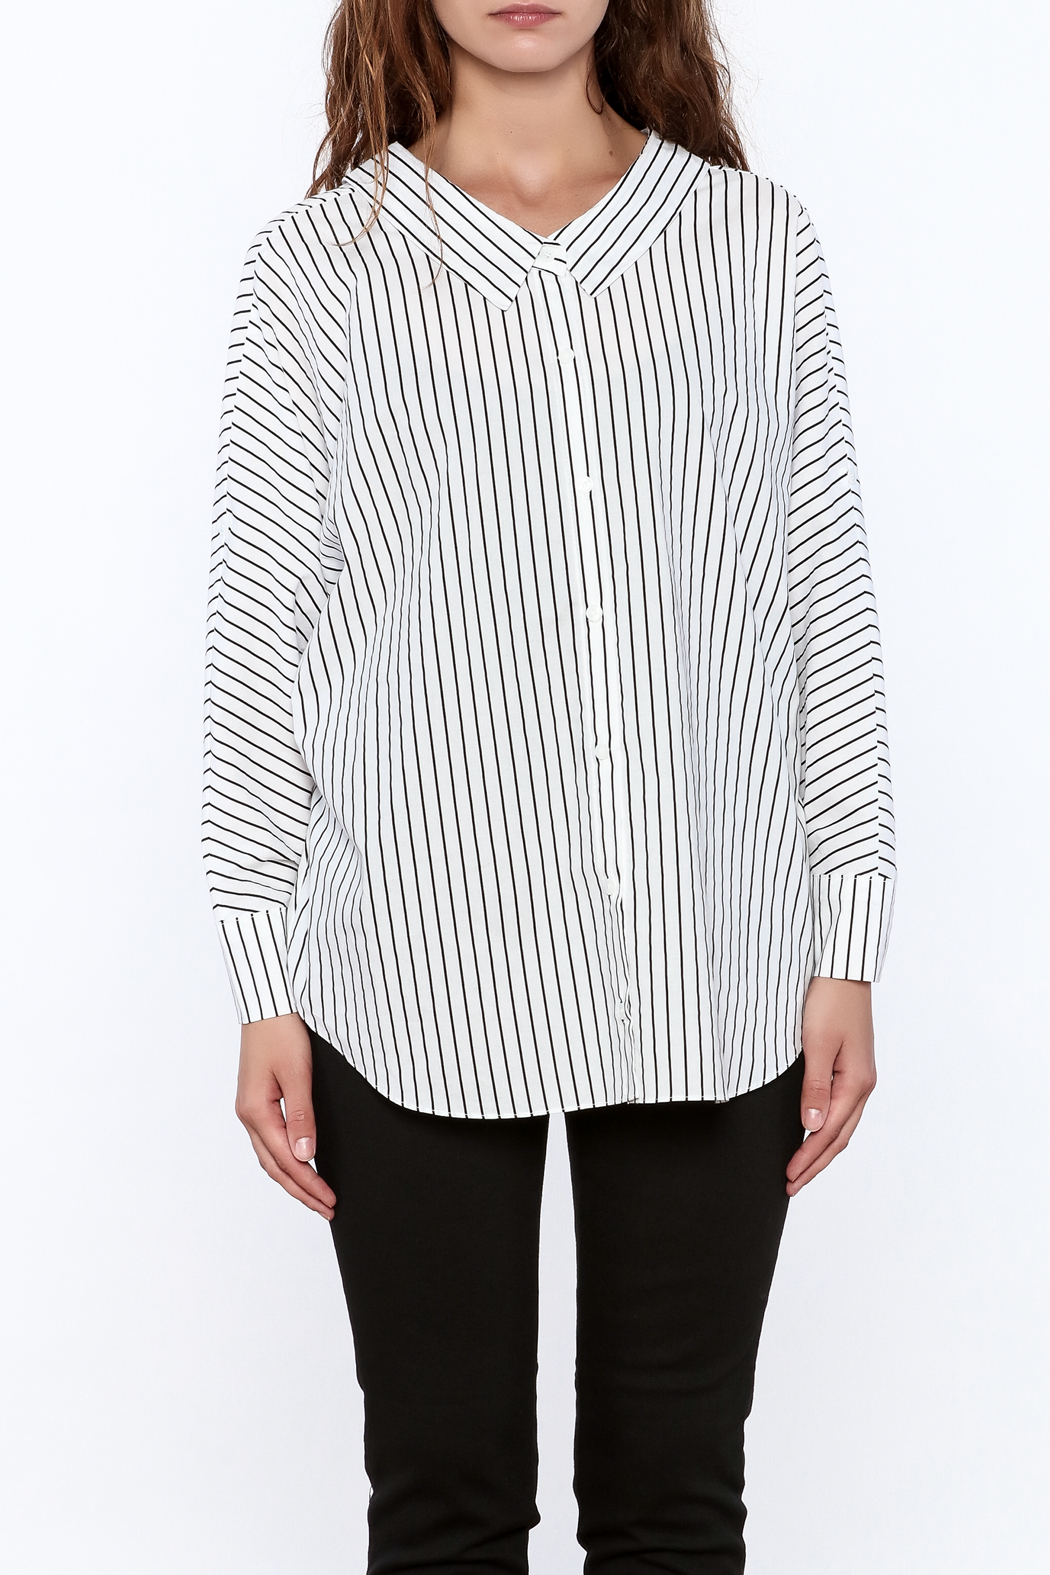 Pinkyotto Stripe Print Long Top - Front Full Image